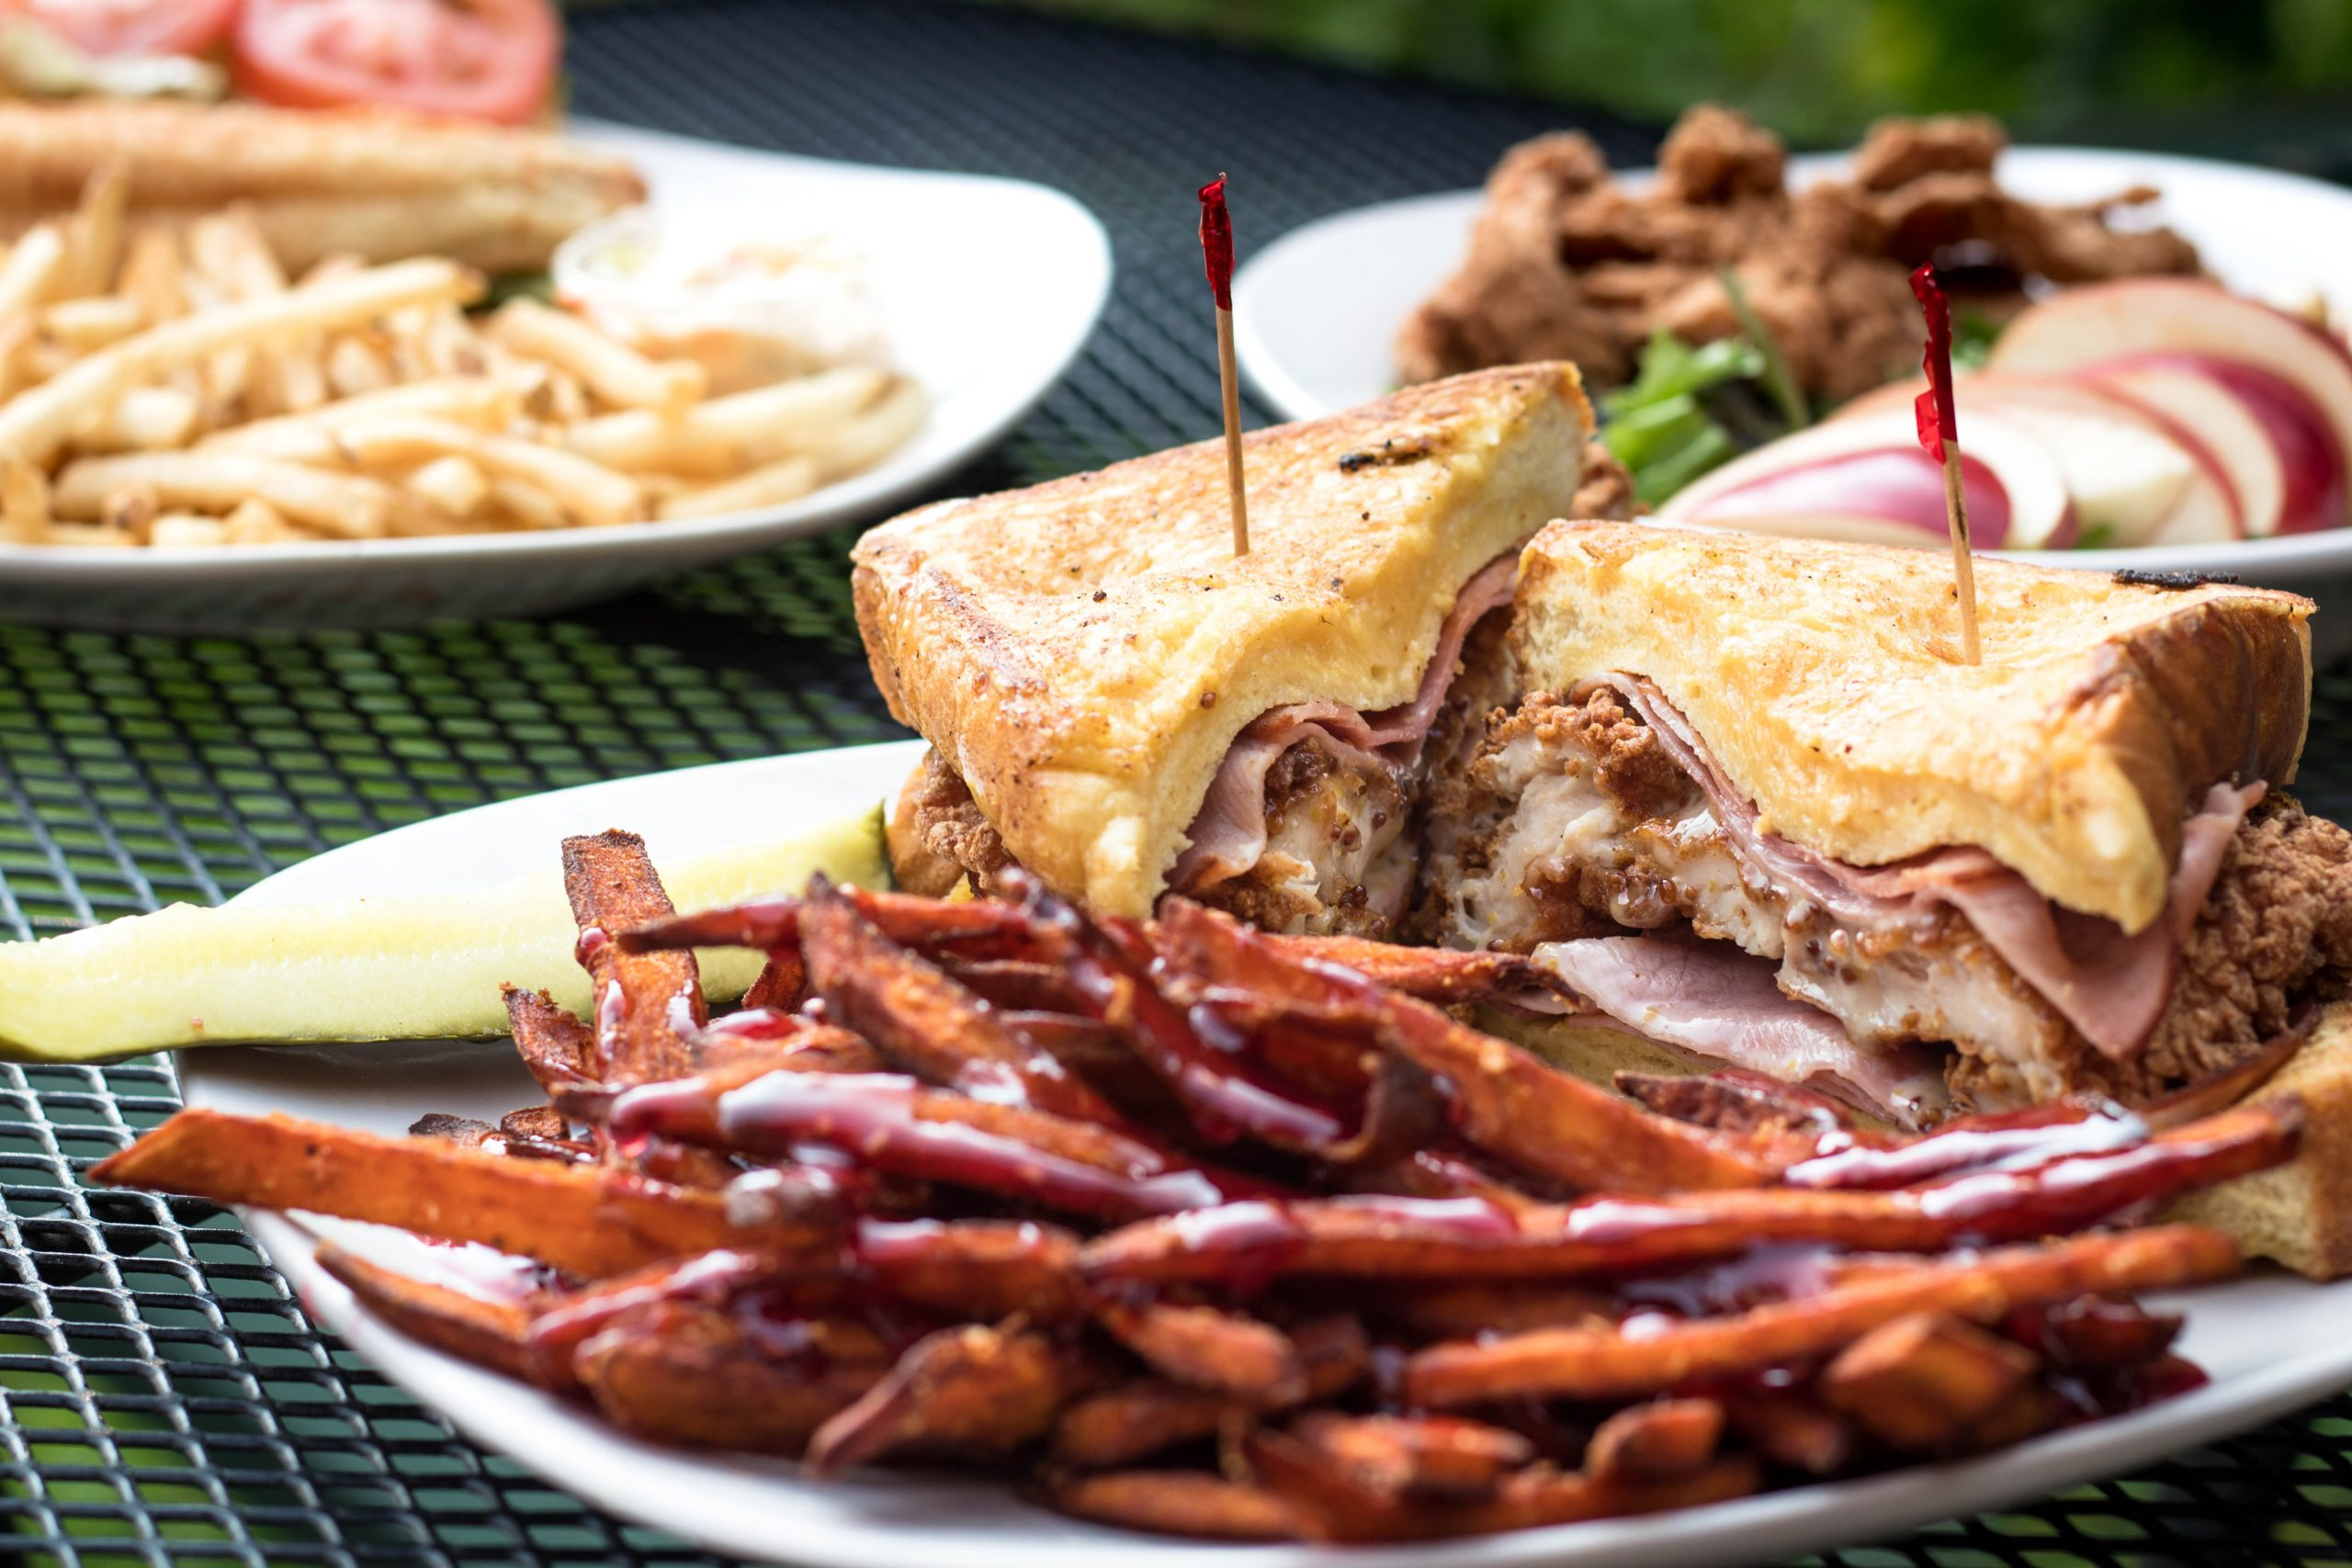 food photography of a sandwich and french fries